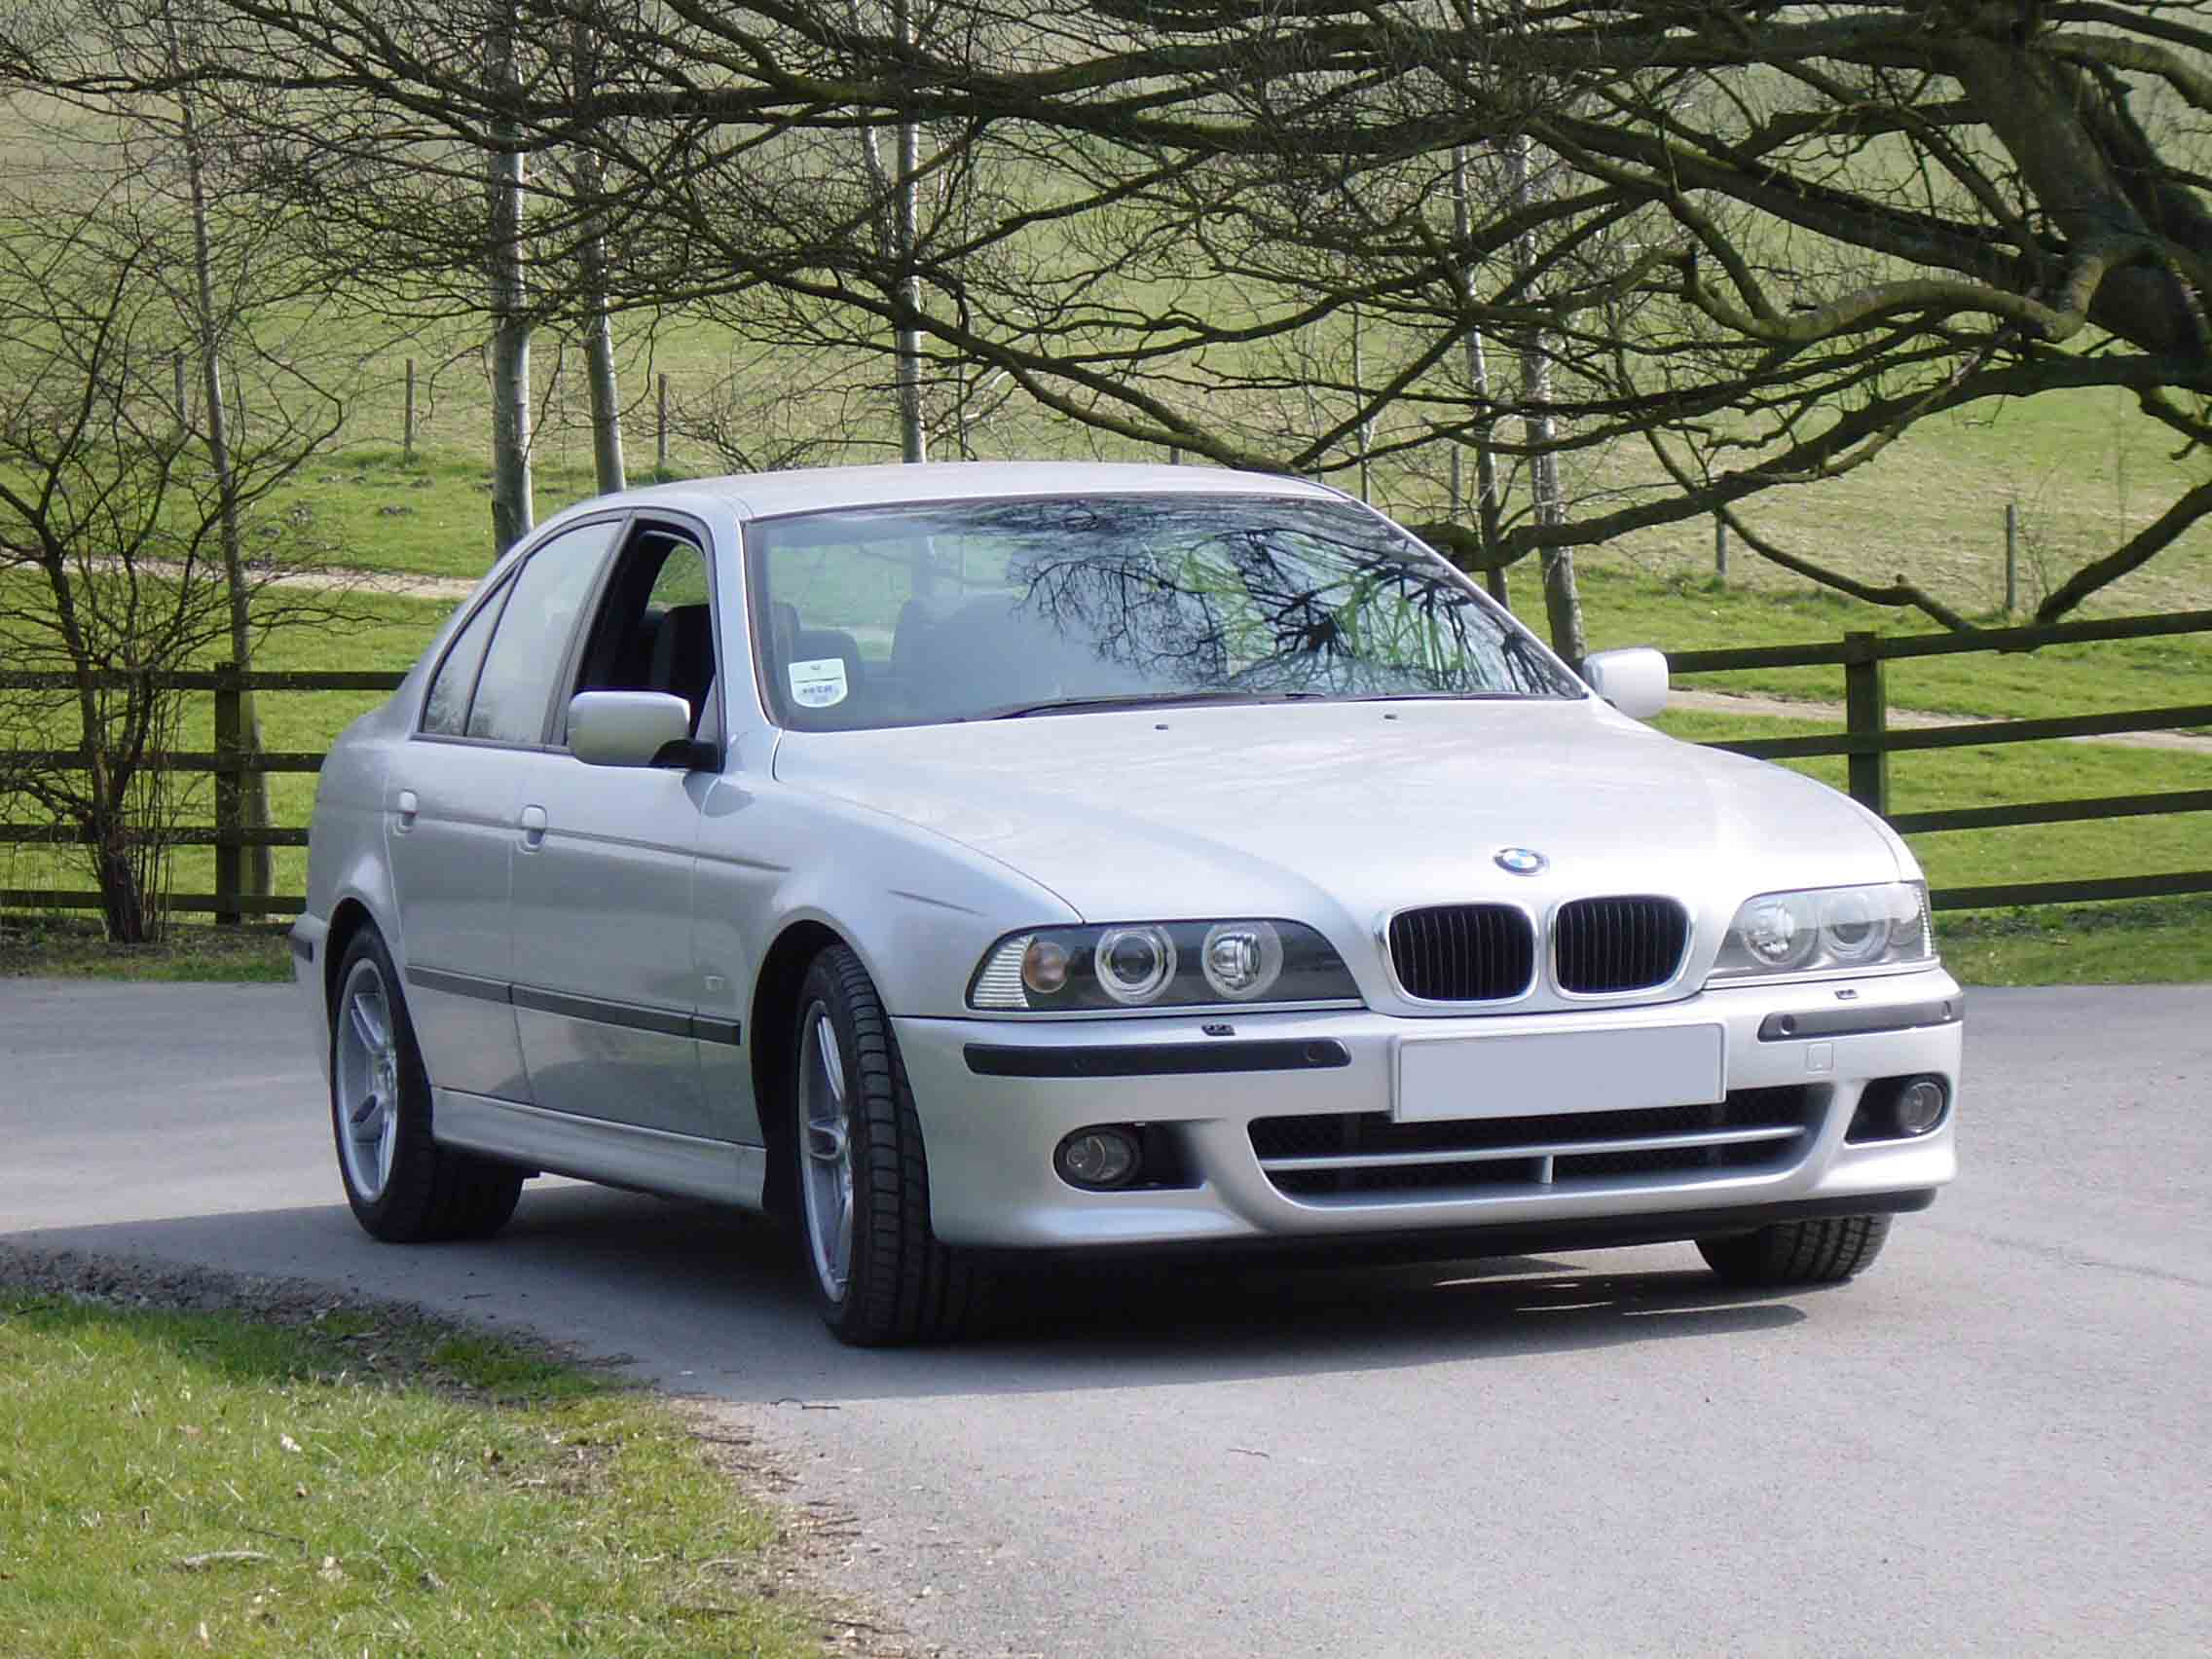 bmw 5 series e39 gallery and specs bimmerin. Black Bedroom Furniture Sets. Home Design Ideas